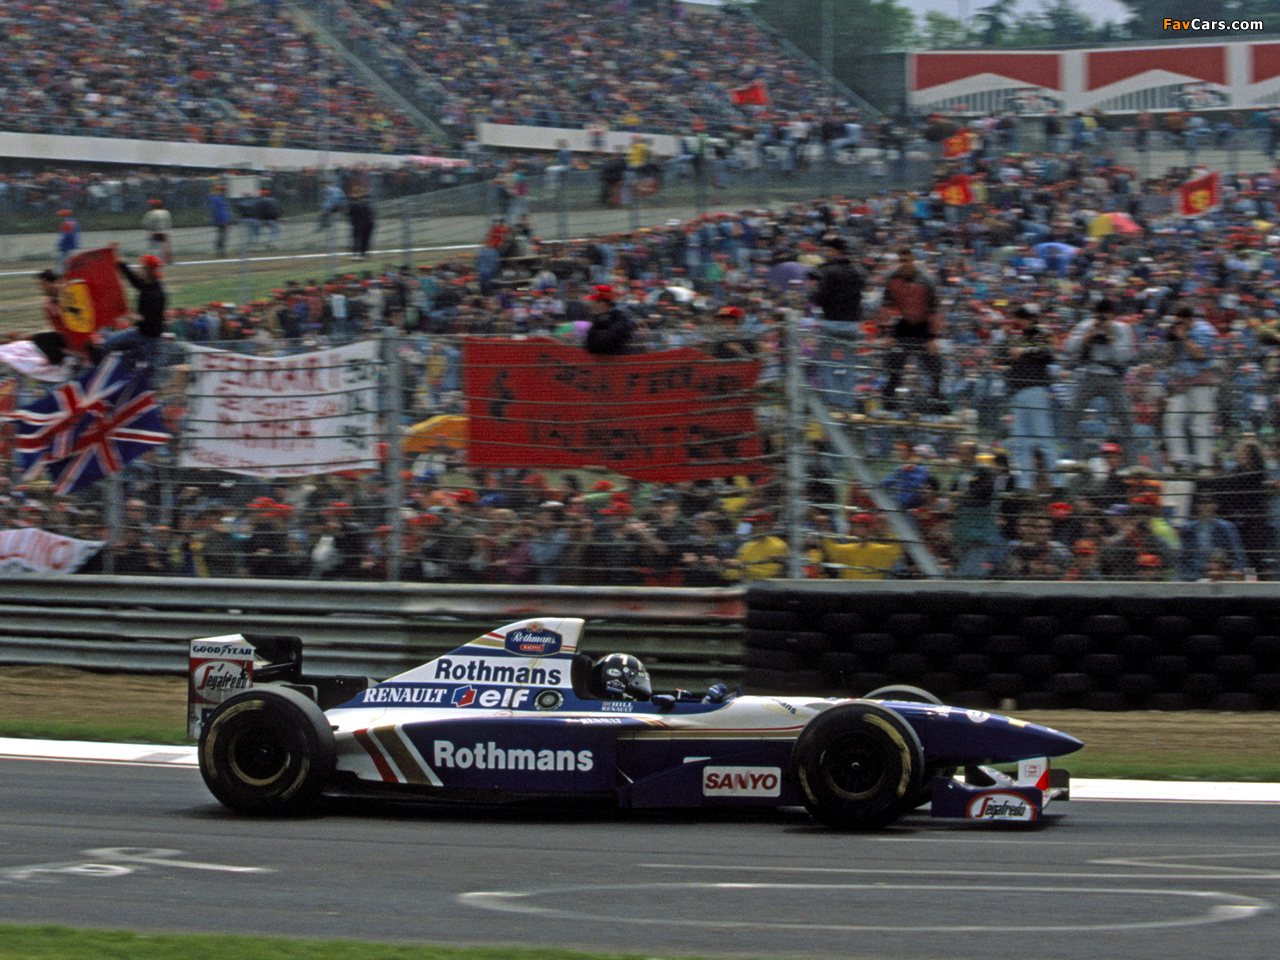 williams_fw17_1995.jpg